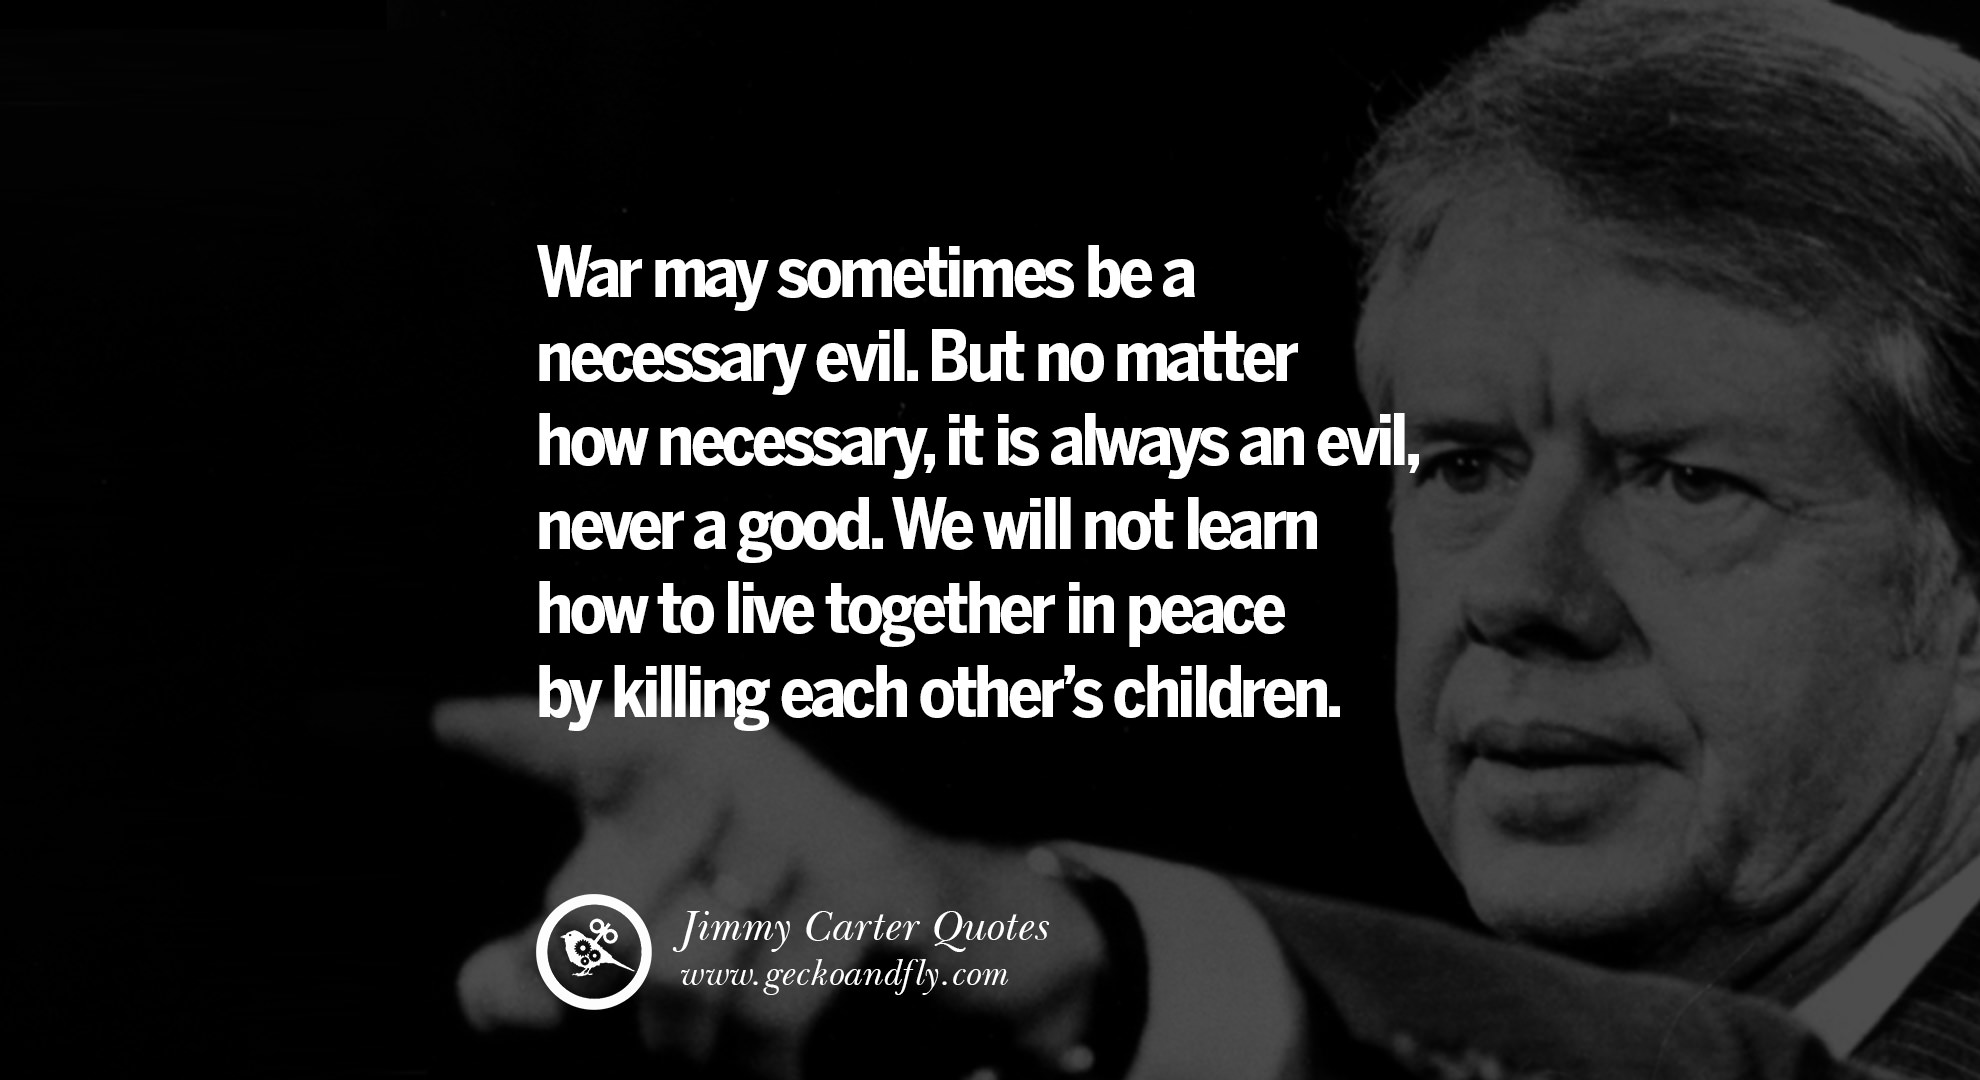 Is War a Necessary Evil?